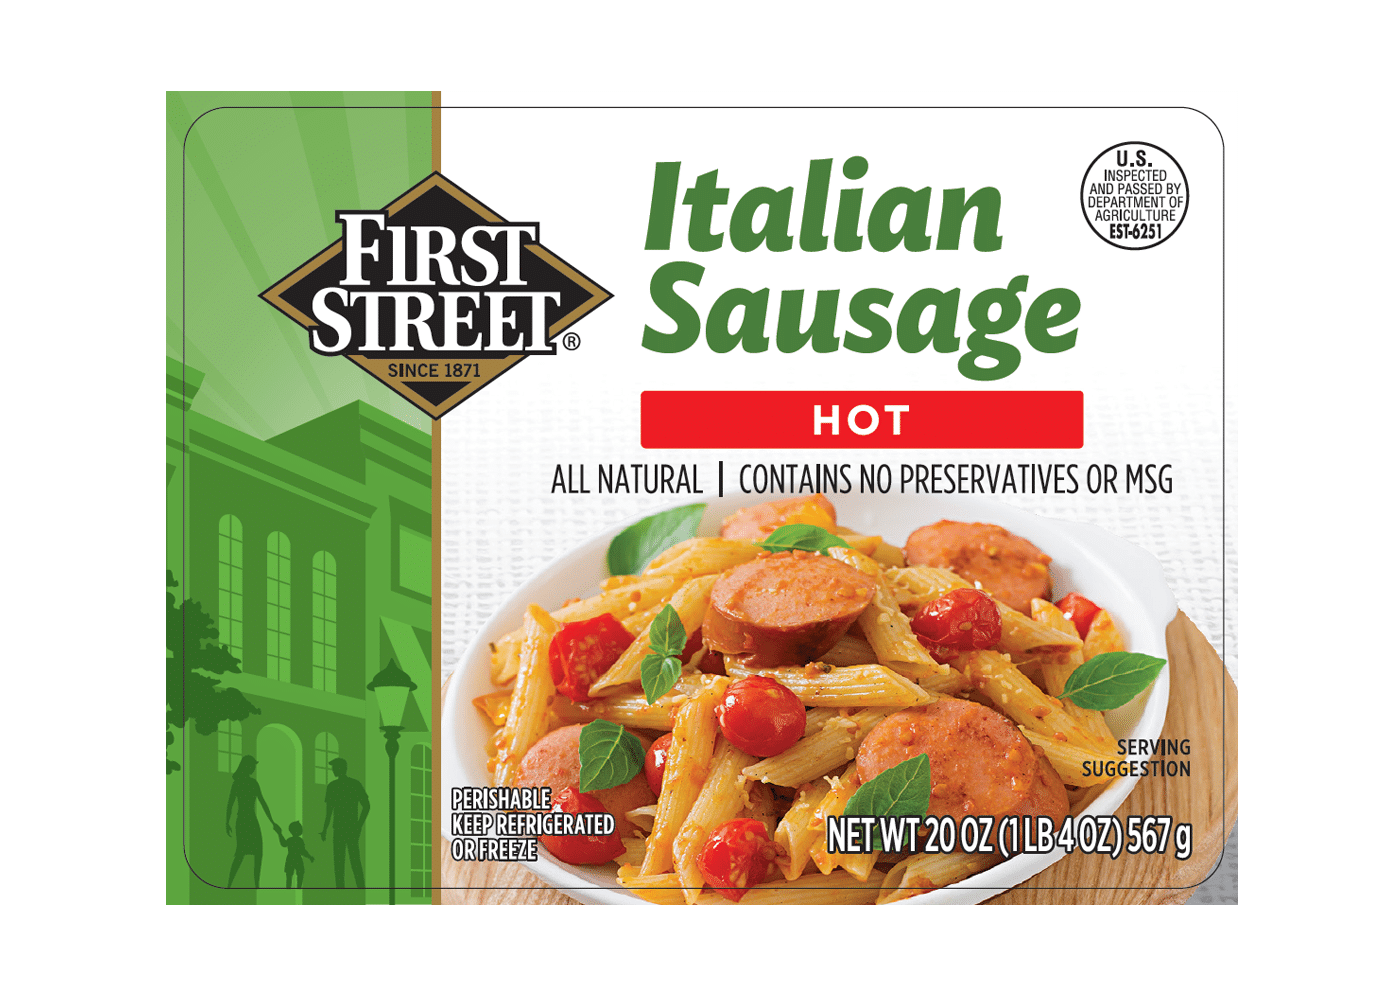 First Street Hot Italian Sausage